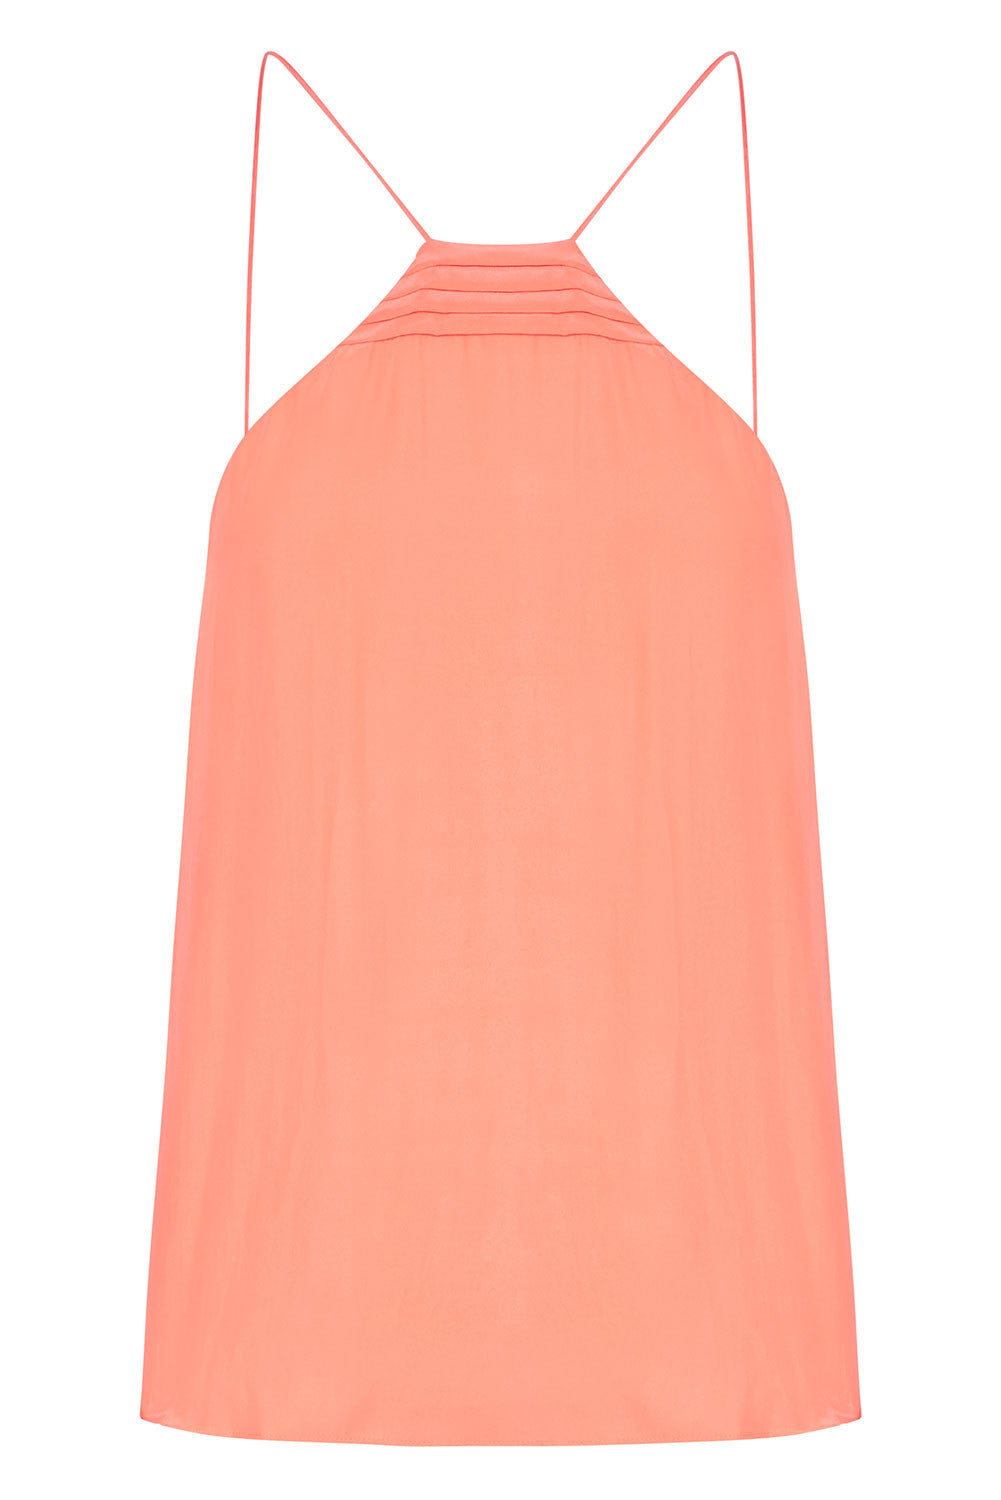 THE 2 in 1 CAMISOLE - CORAL